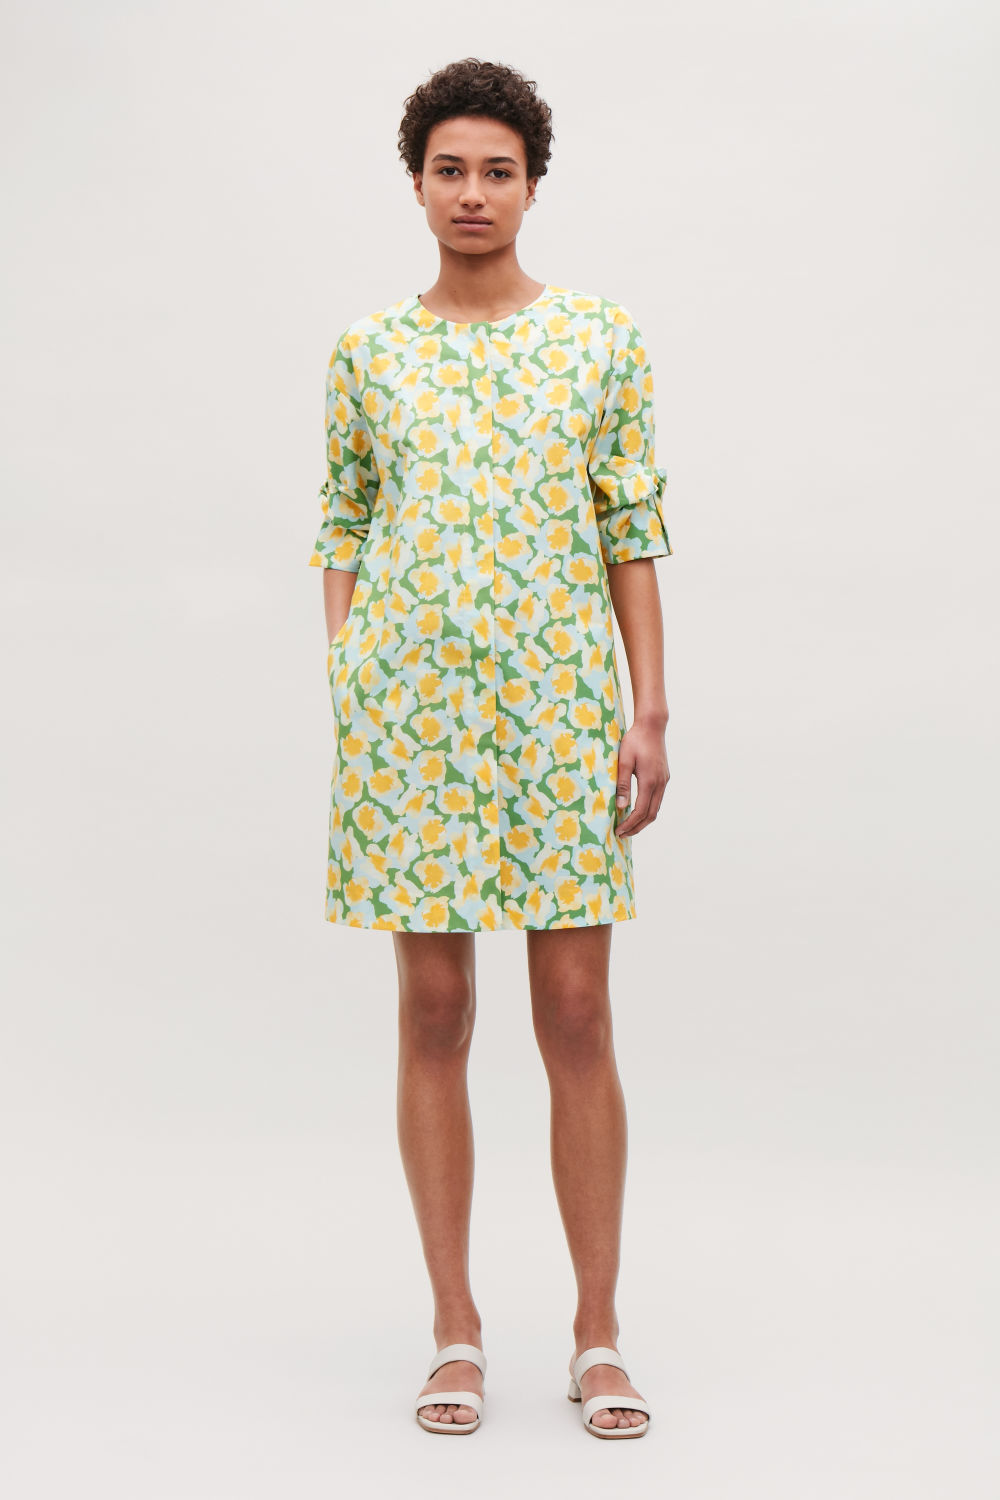 COS KNOT-DETAILED PRINTED DRESS,Green